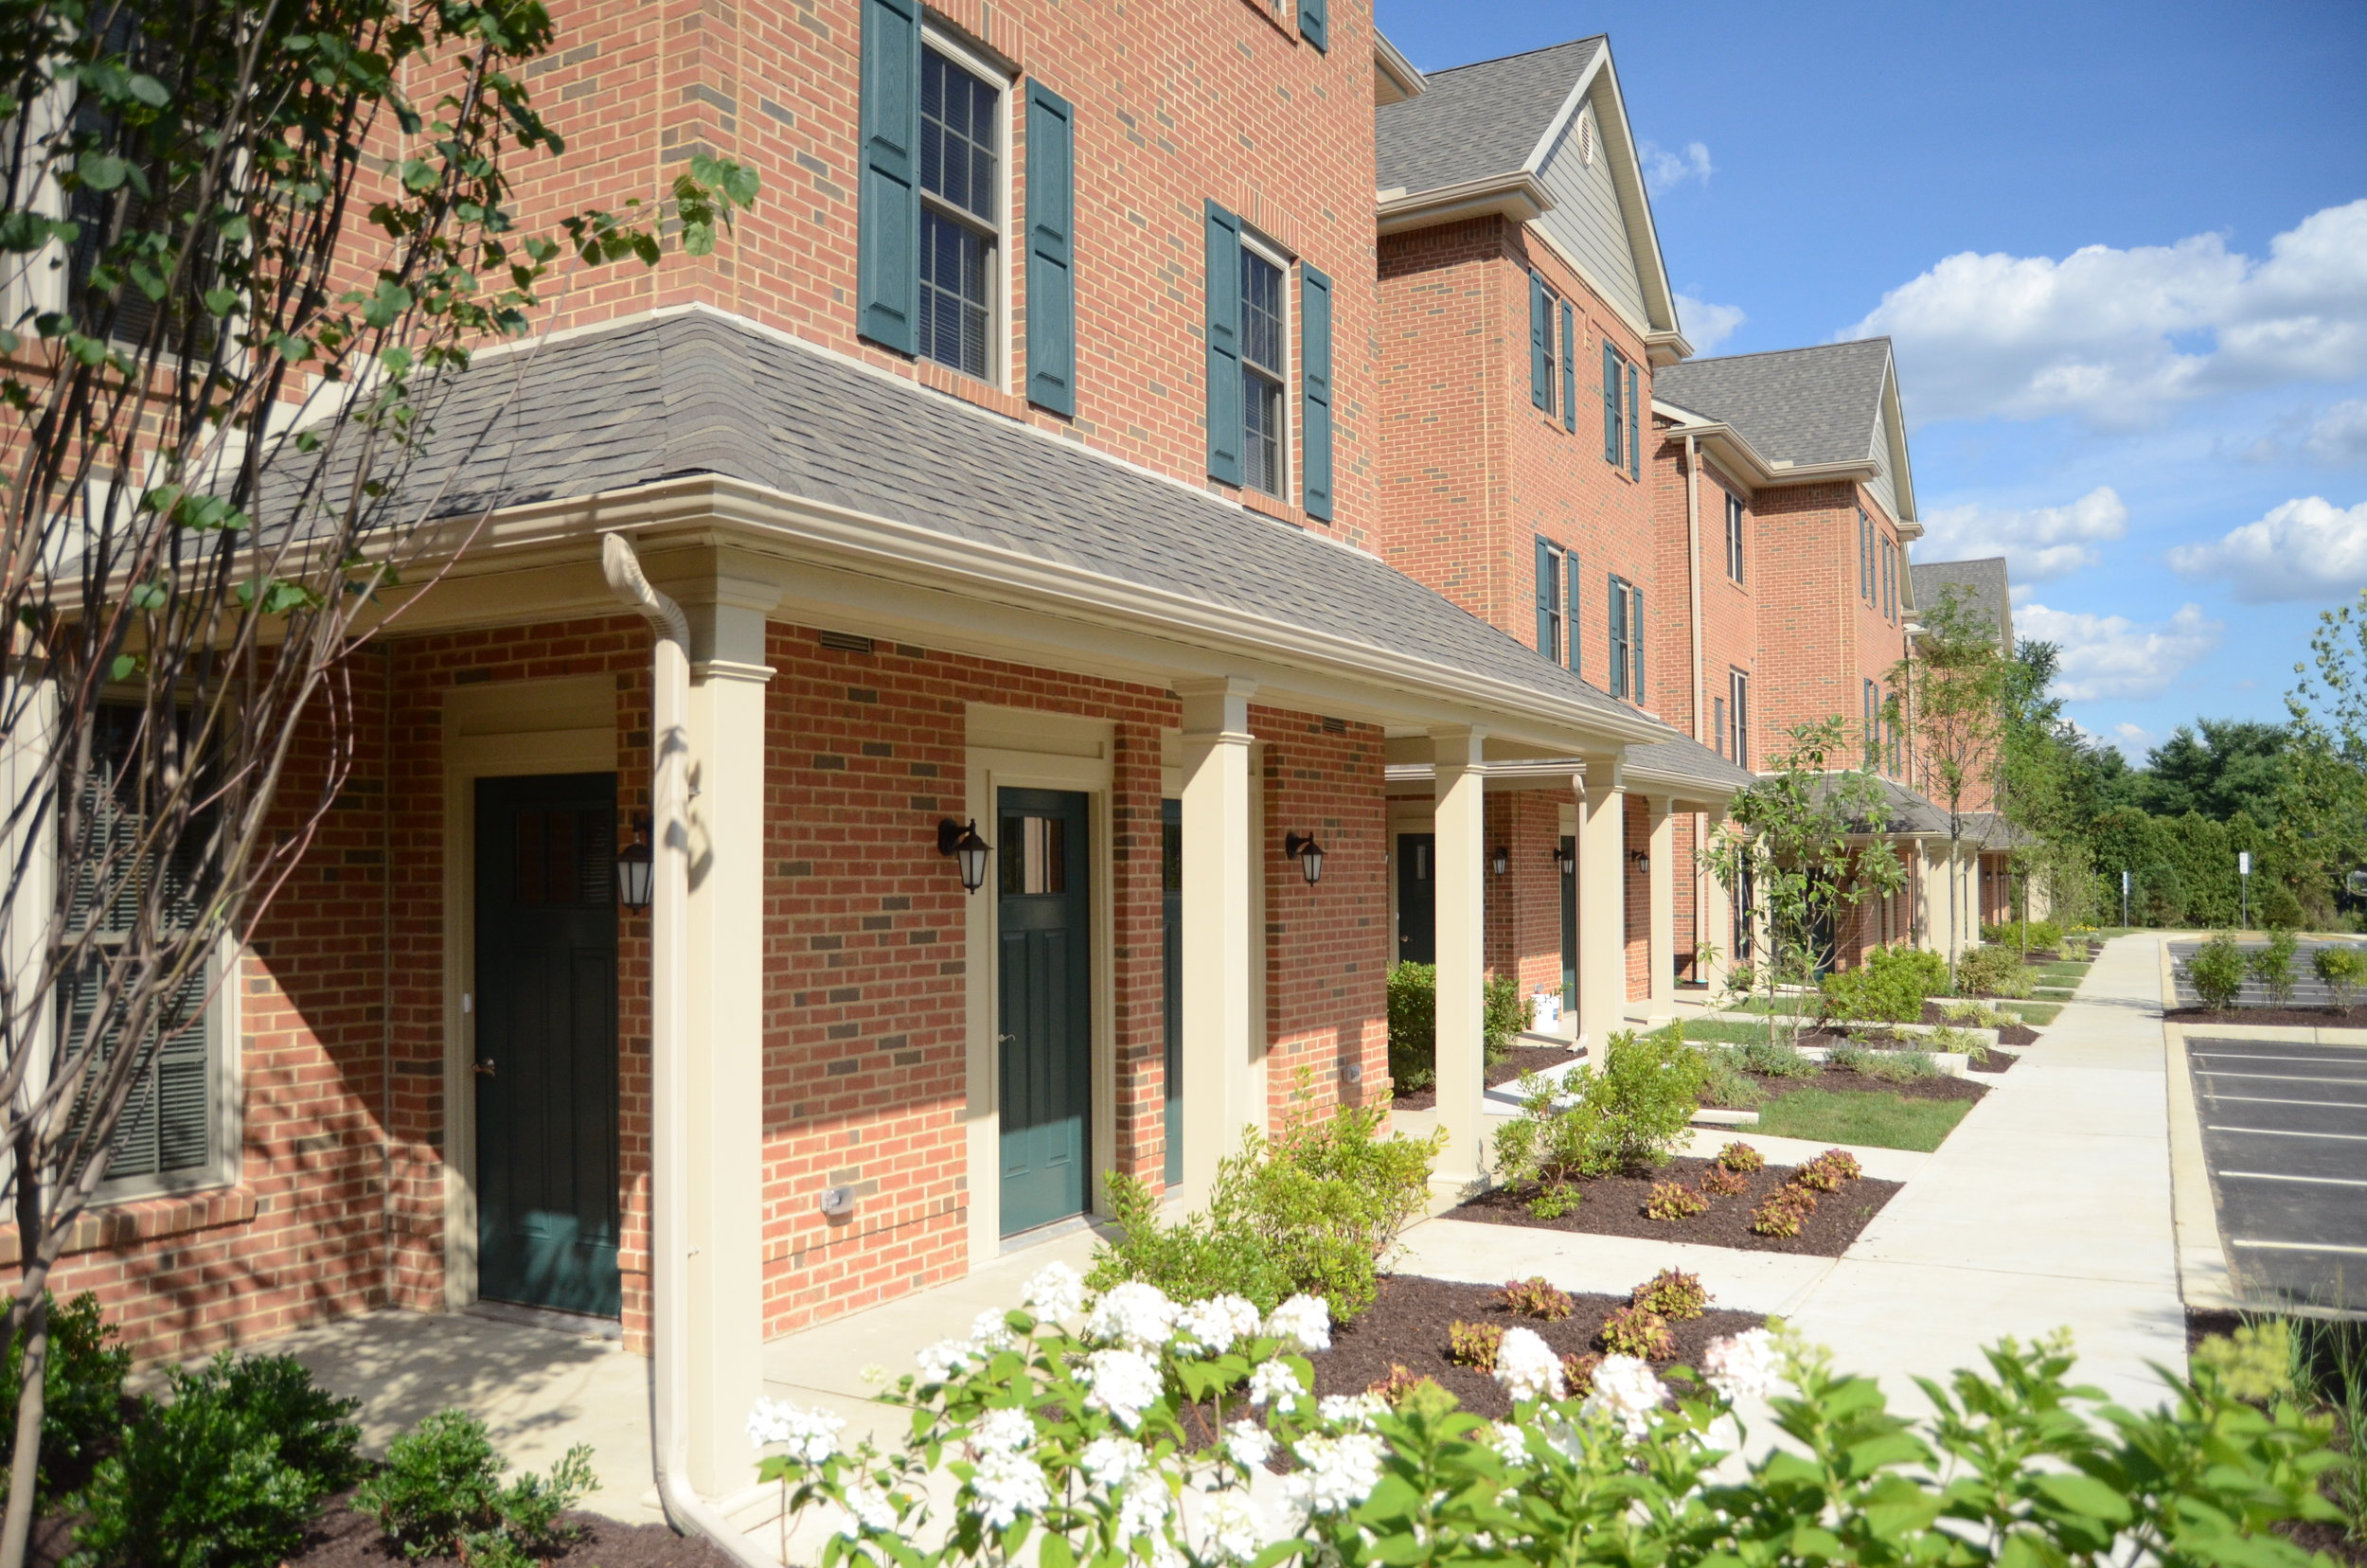 Corner Park - WEST CHESTER, PALocated just 5 minutes from downtown West Chester, Corner Park offers 1, 2 and 3 bedroom apartment homes and townhomes. Experience the laid-back and serene living experience Corner Park has to offer.RESIDENT PORTAL